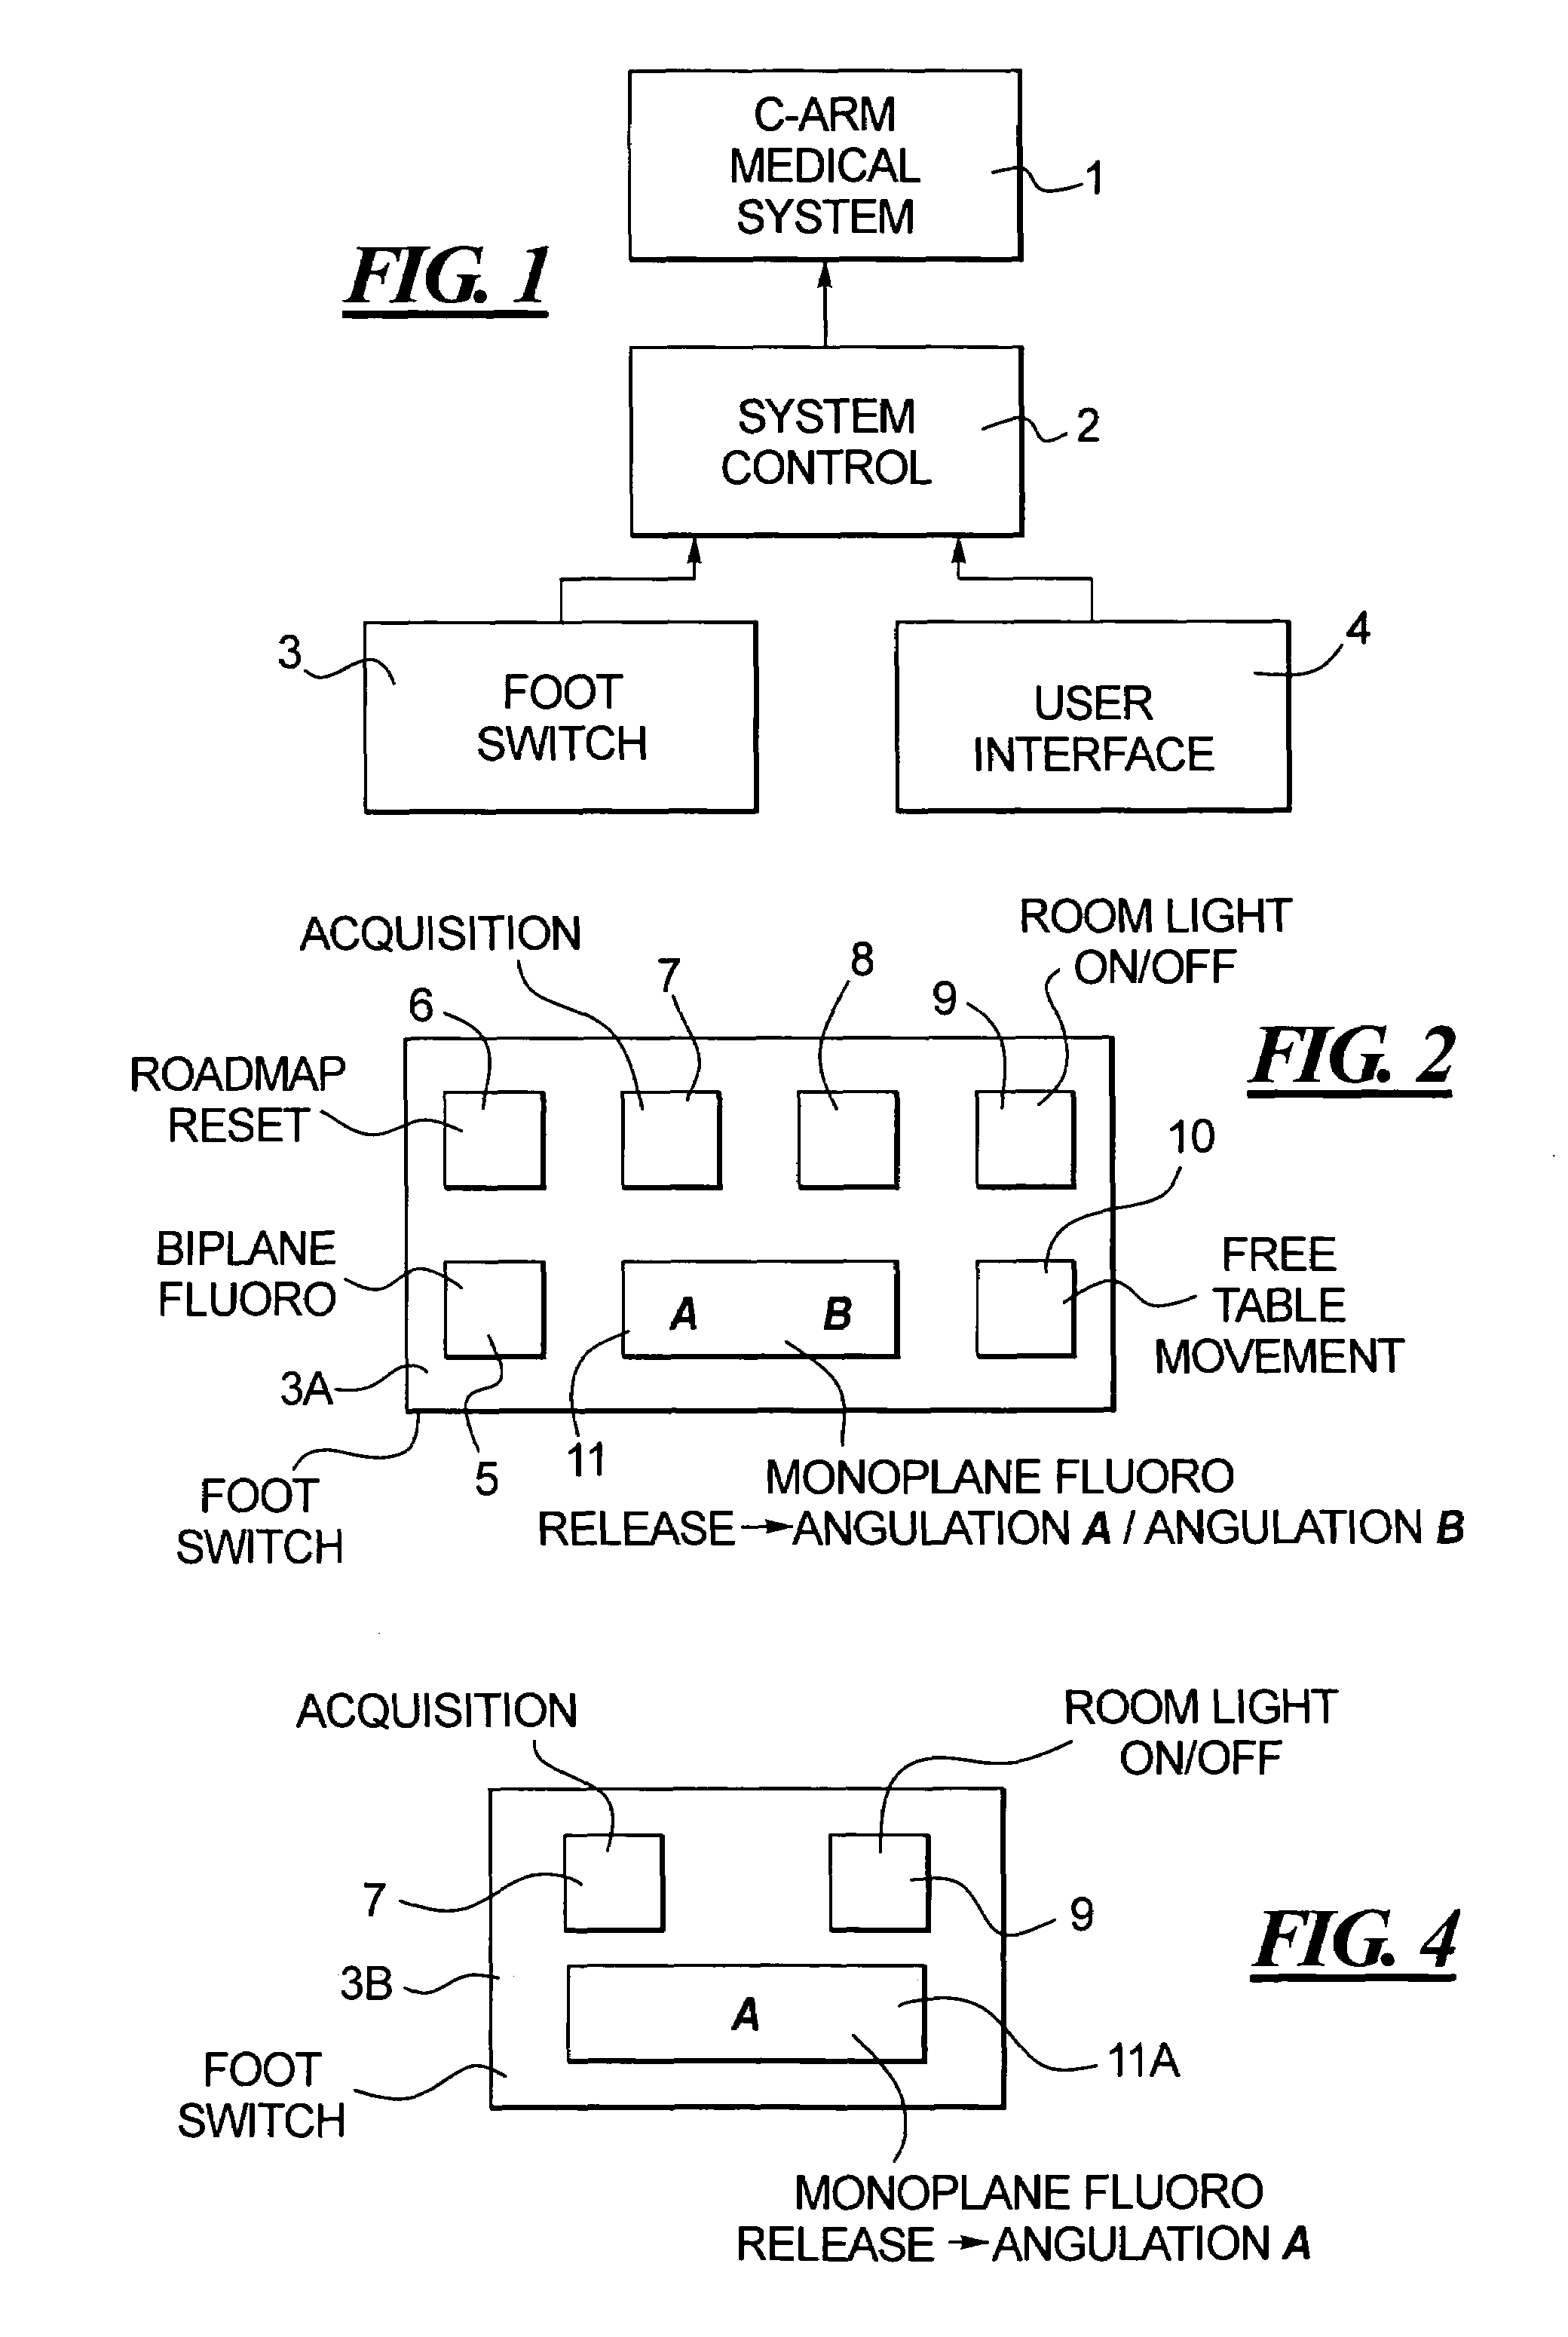 Brevet us7331711 method and foot switch control for fast patent drawing ccuart Gallery